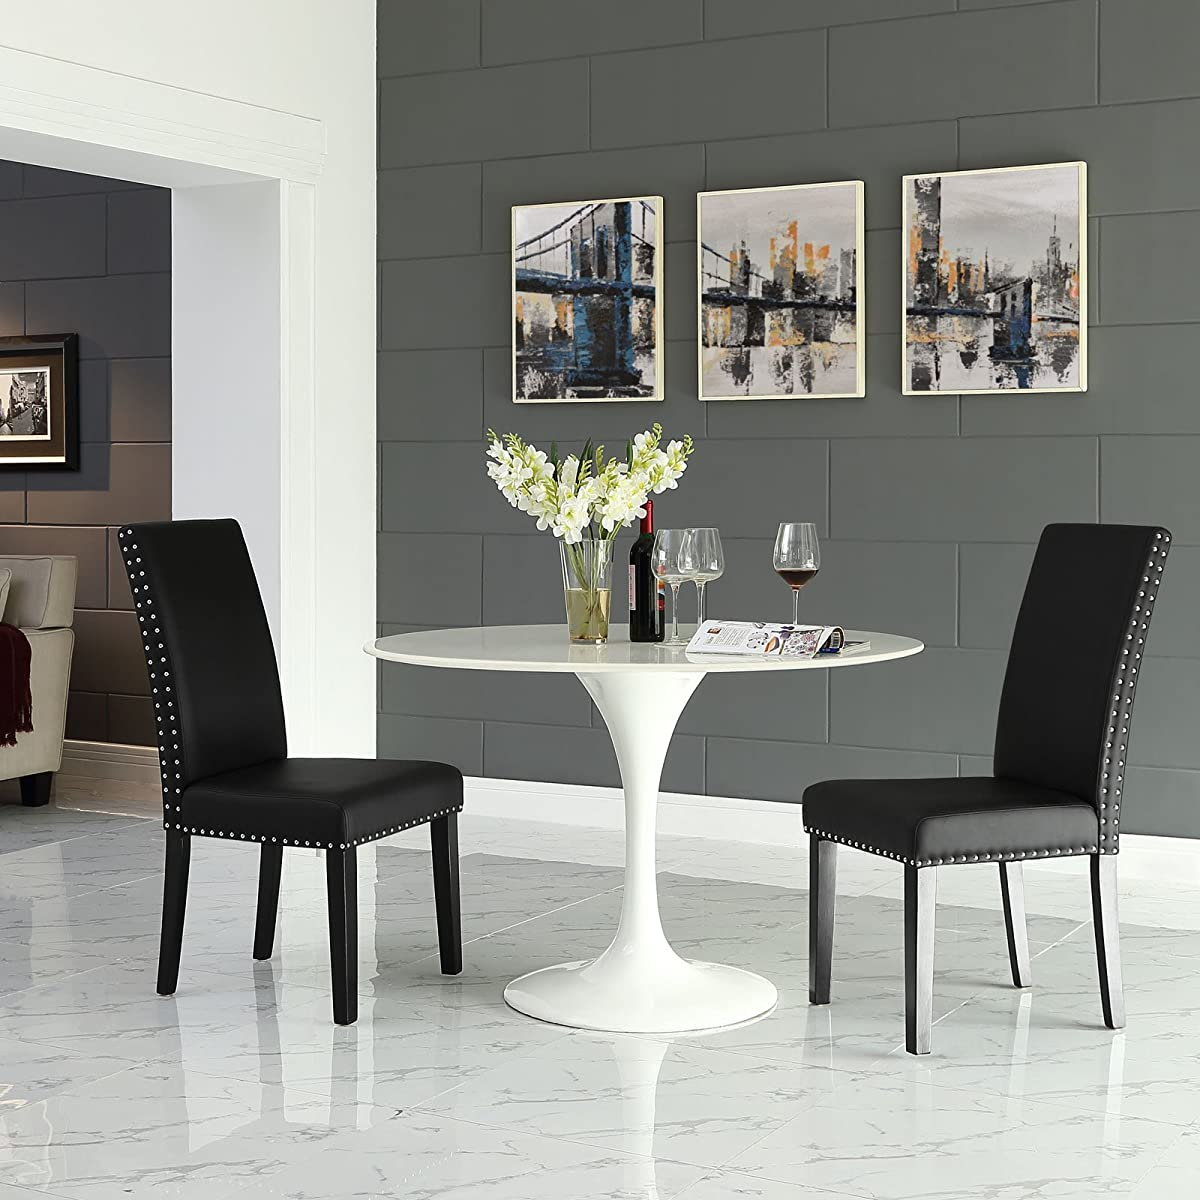 Modway Parcel Modern Upholstered Vinyl Parsons Dining Chair With Polished Nailhead Trim And Wood Legs In Black